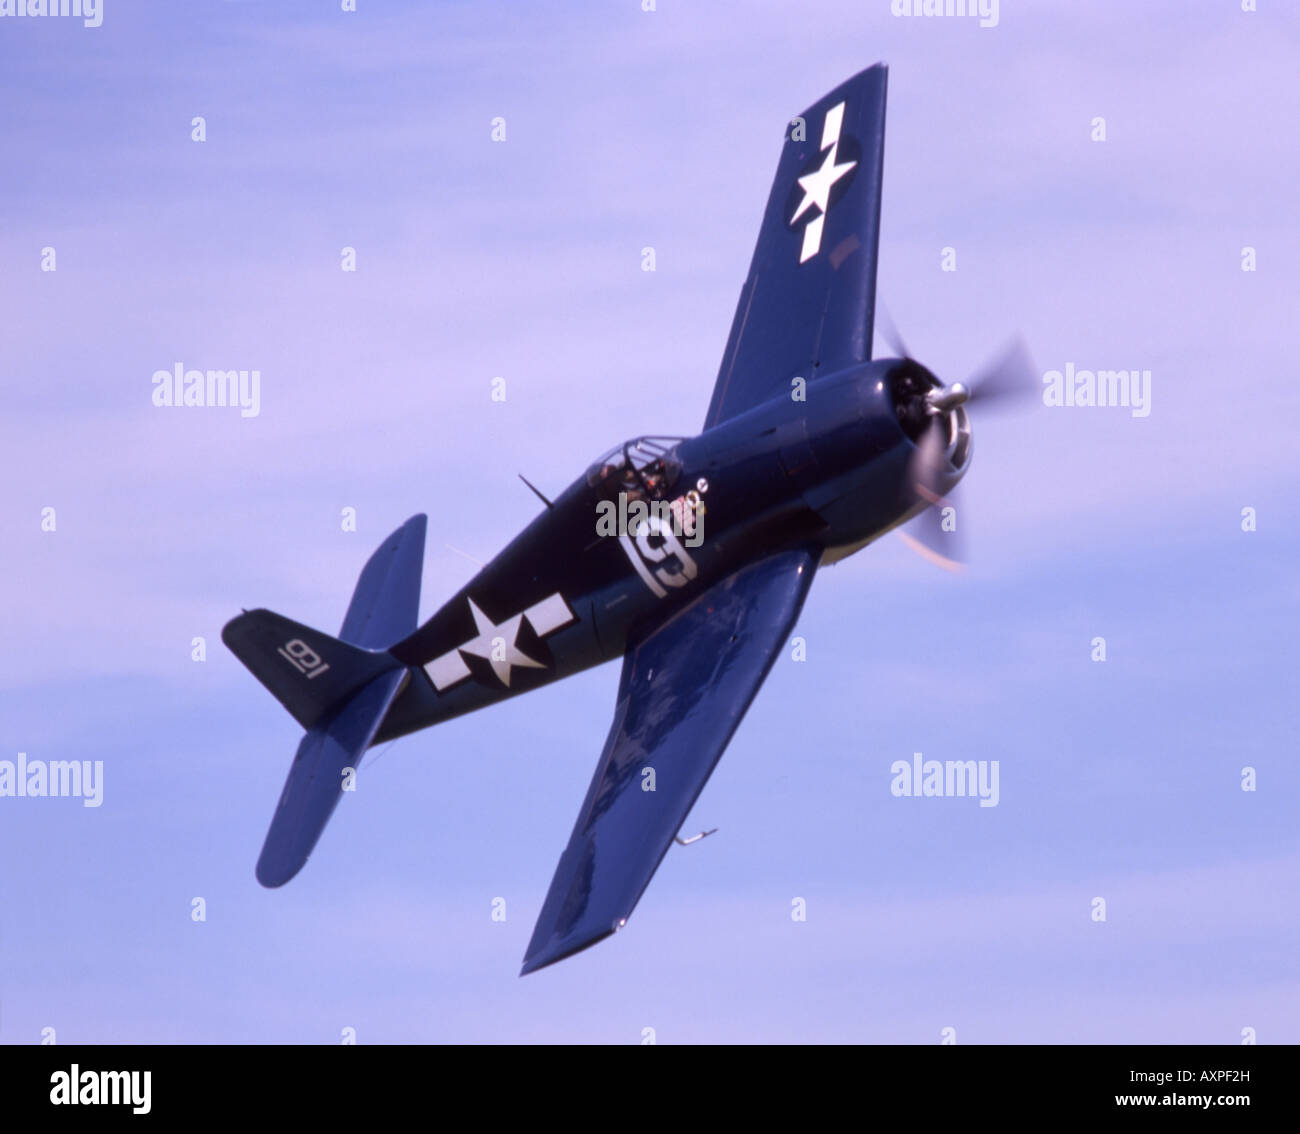 Grumman Hellcat American fighter aircraft from world war two - Stock Image